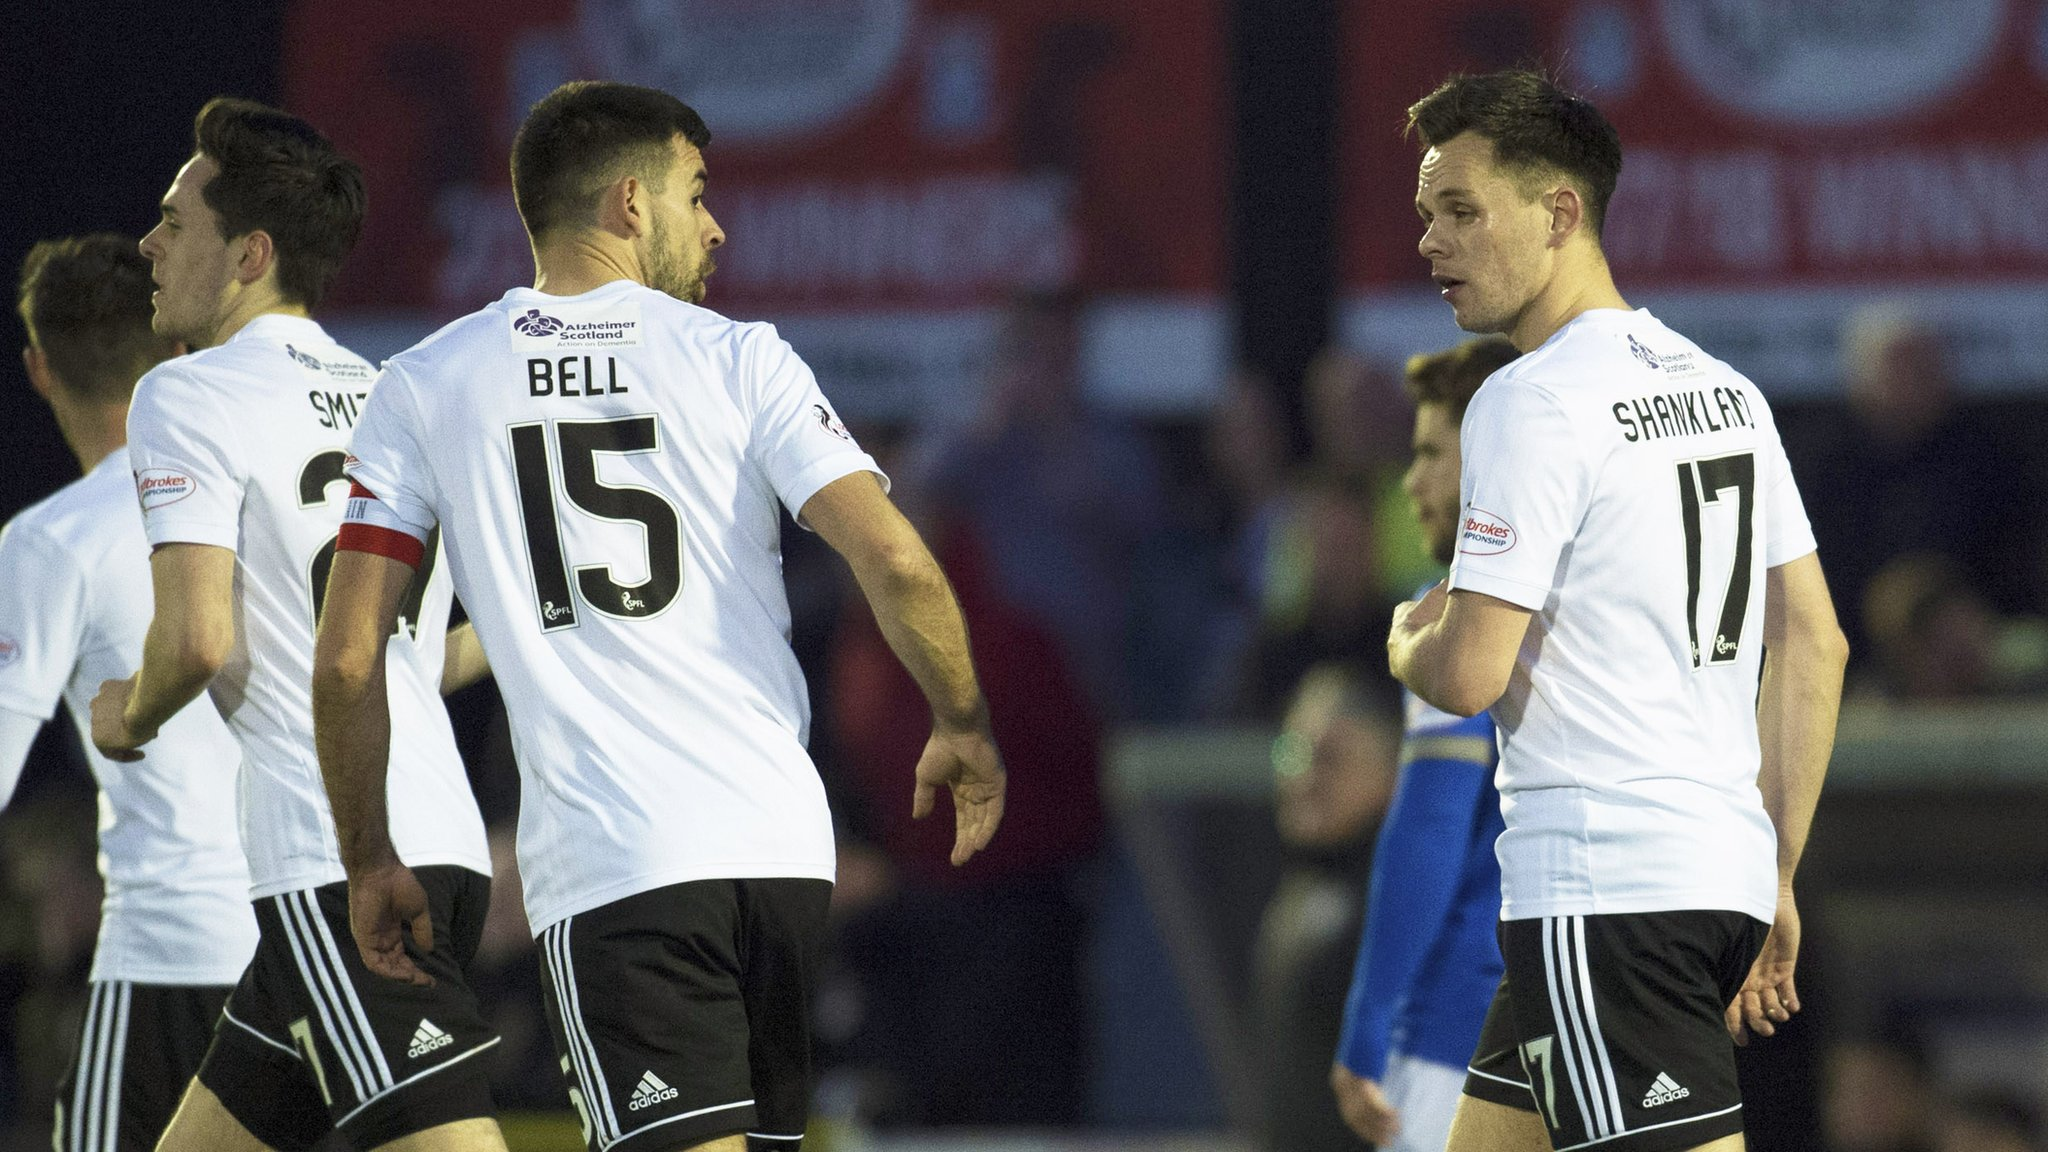 Ayr United beat Queen of the South to return to third sport